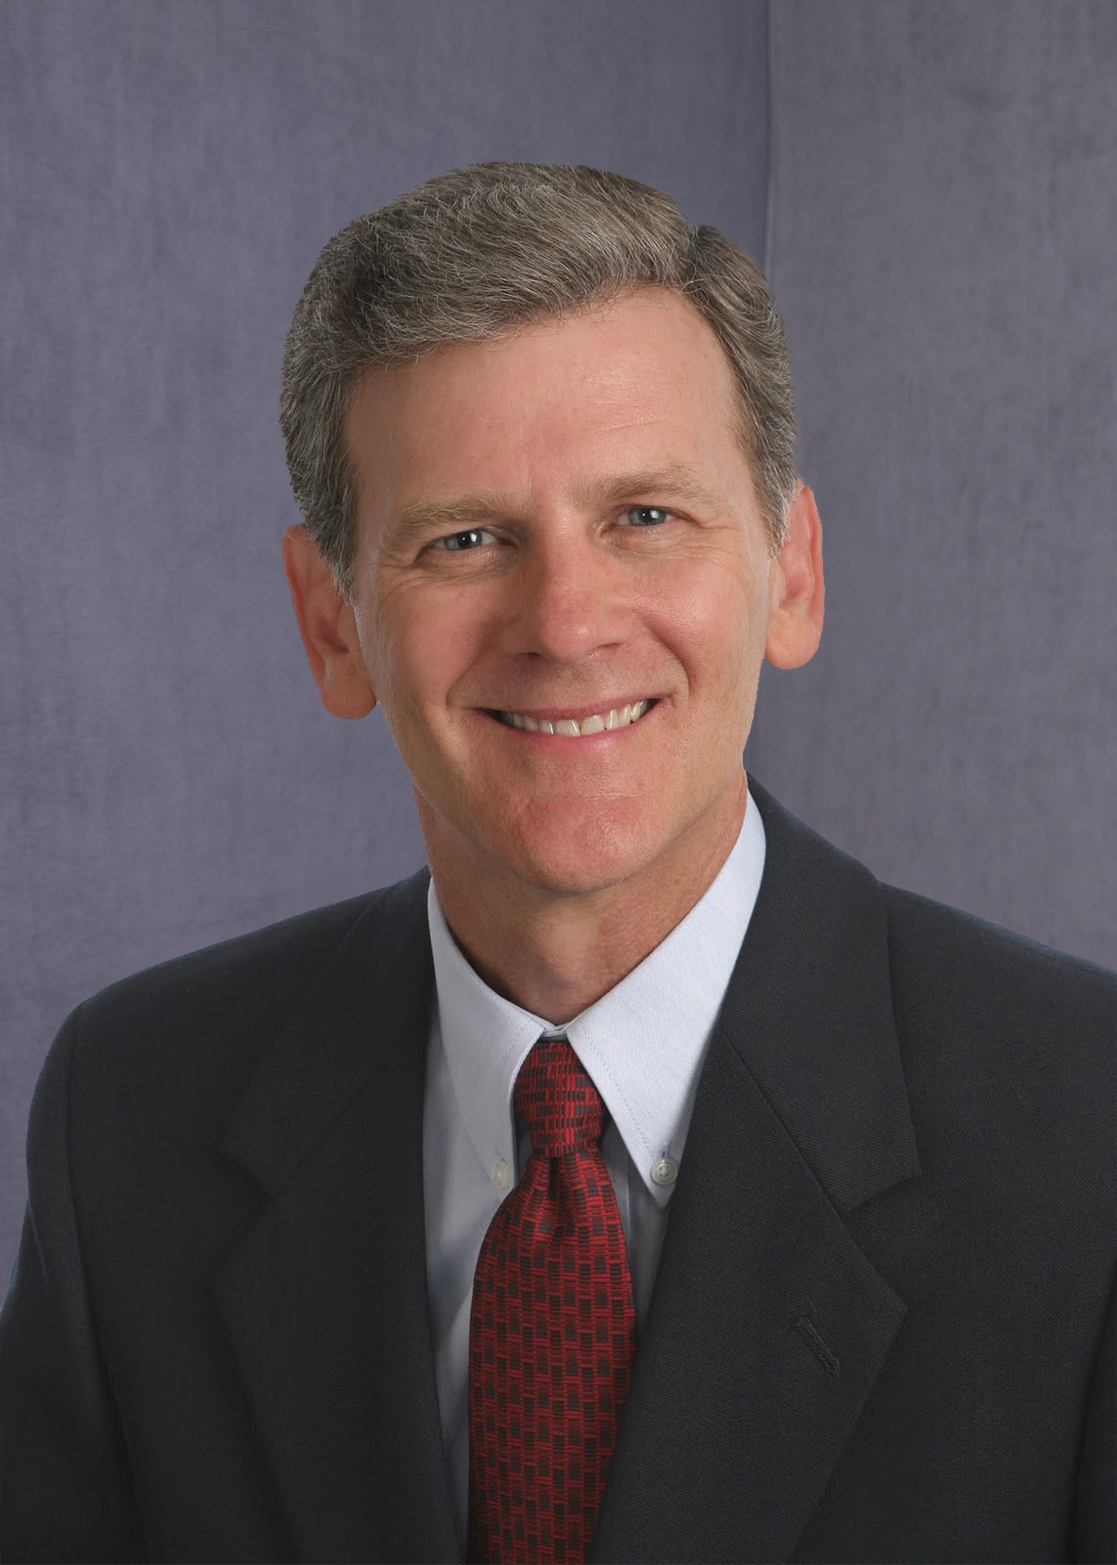 Dr. Bryan Chappell